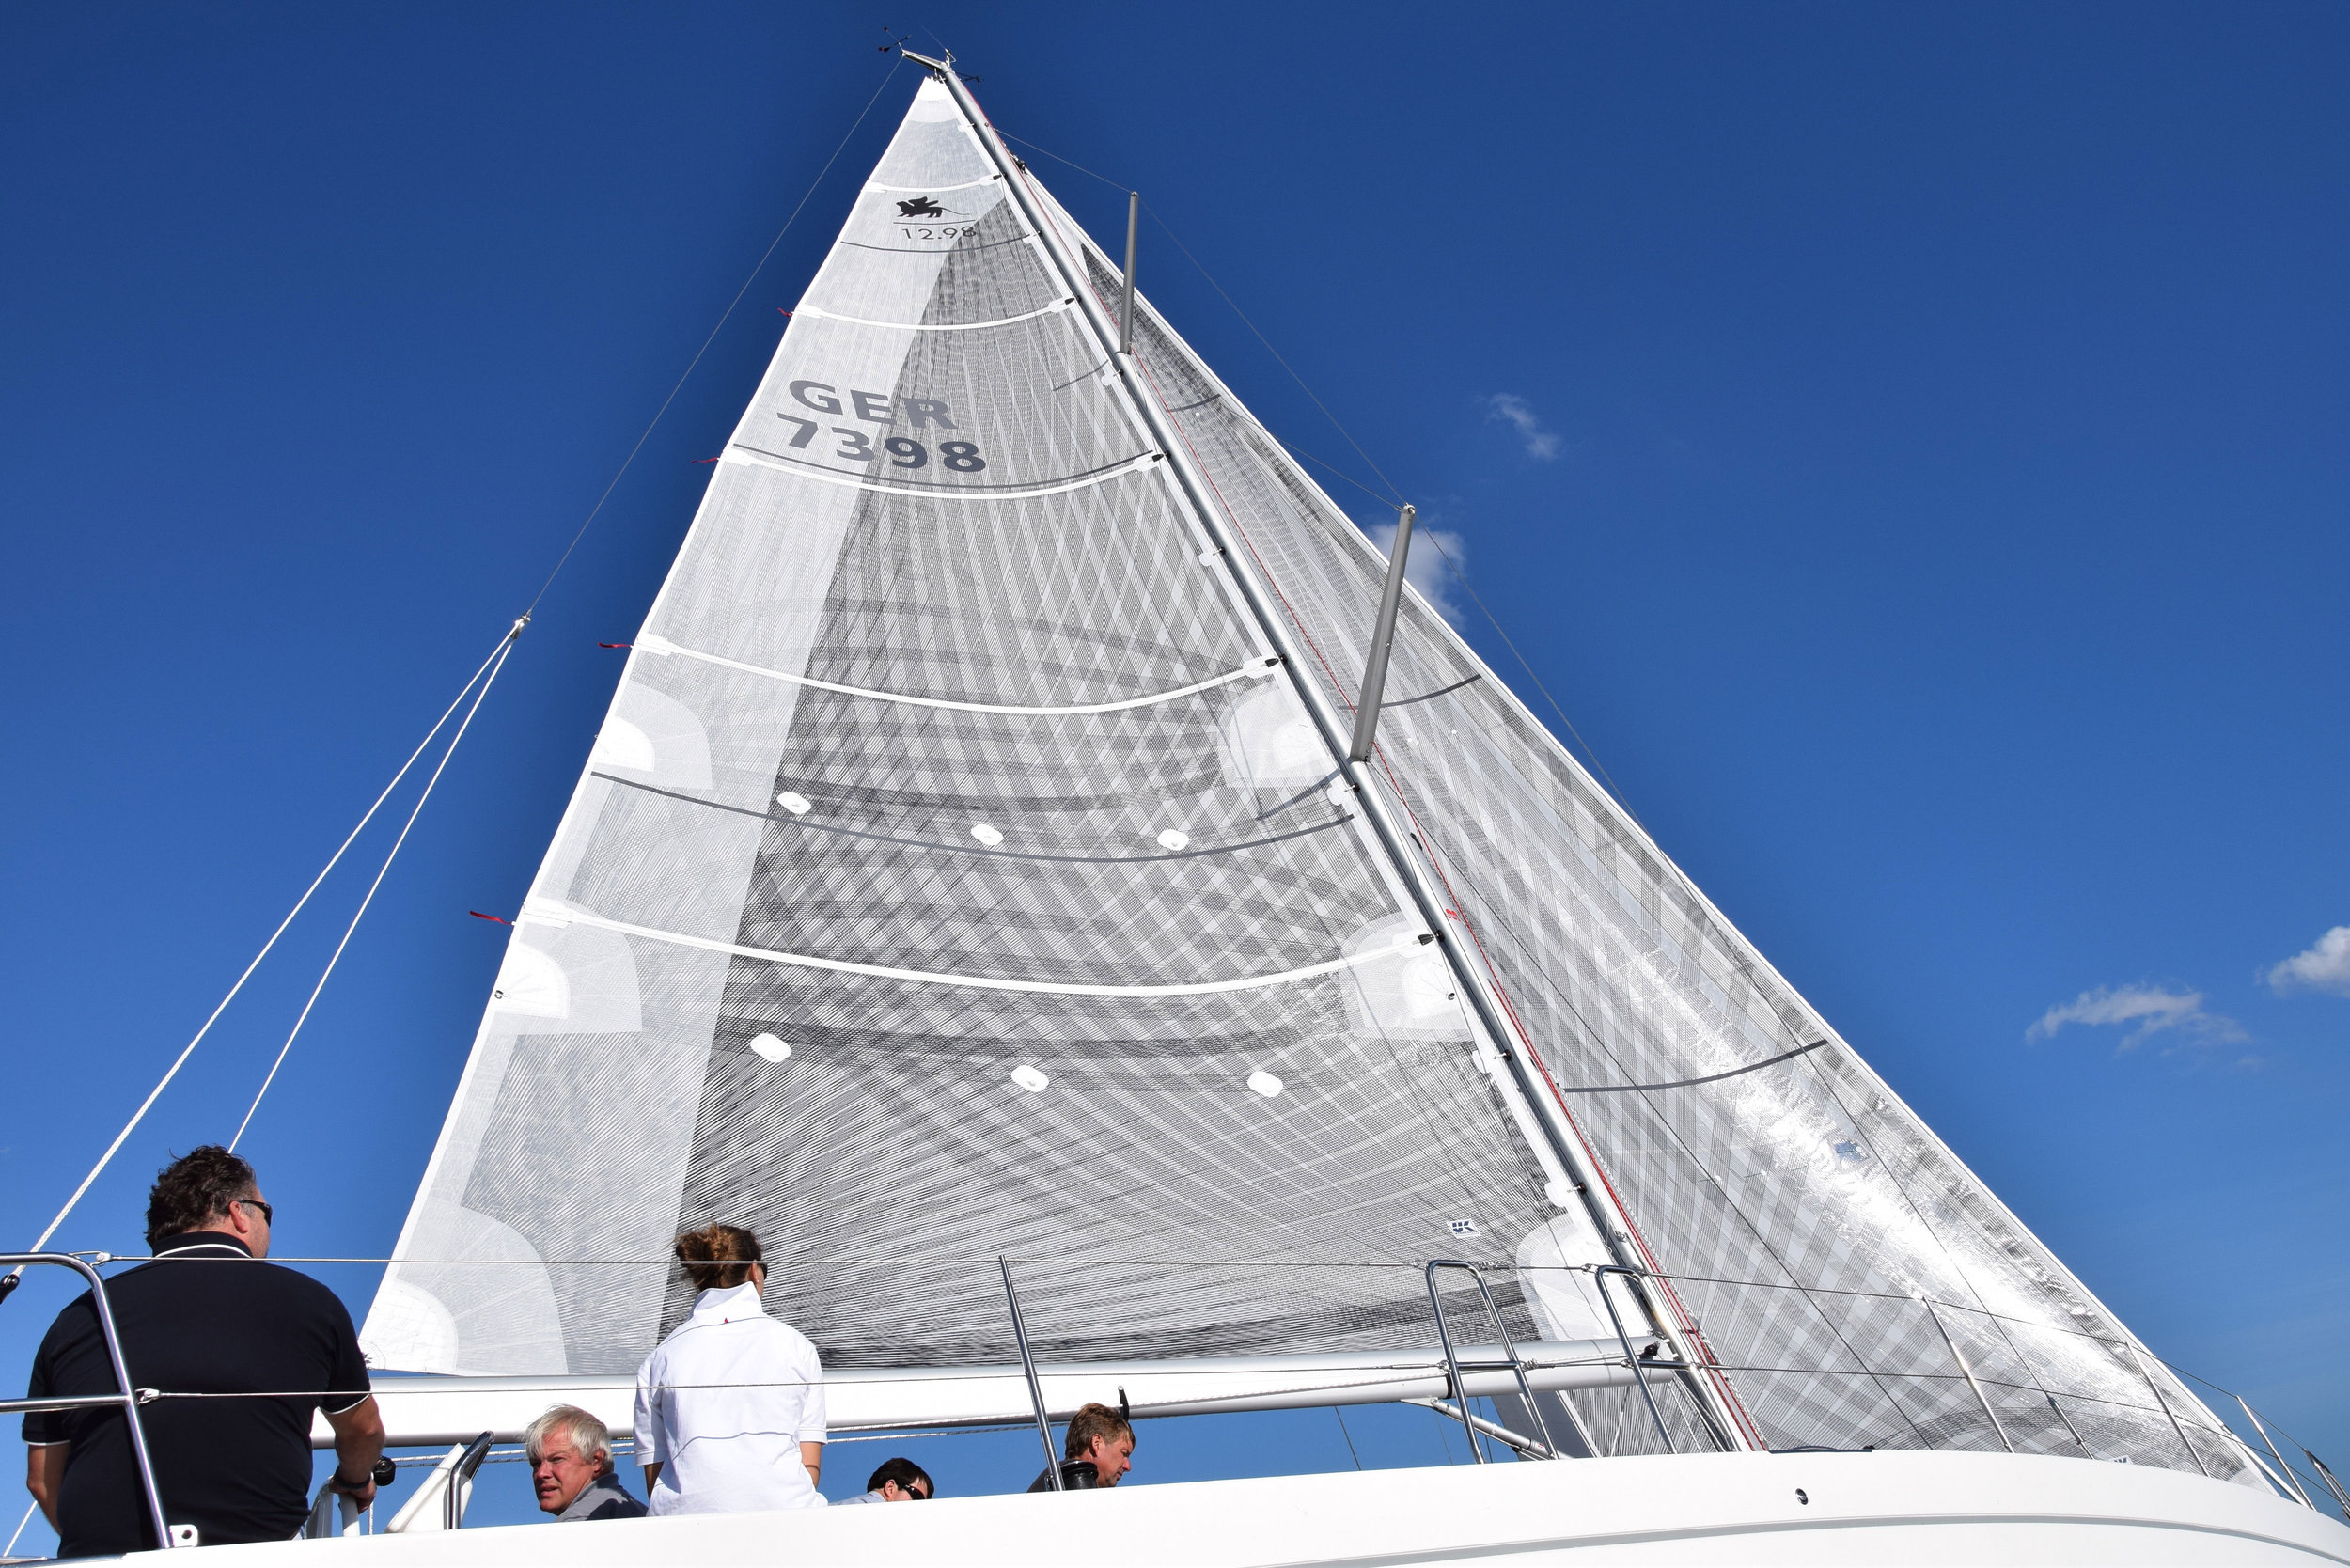 A full batten cruising mainsail with two rows of reefs made with carbon X-Drive. Notice the extra taffeta layer on the leech that increases longevity to prevent hinging damage induced by luffing.